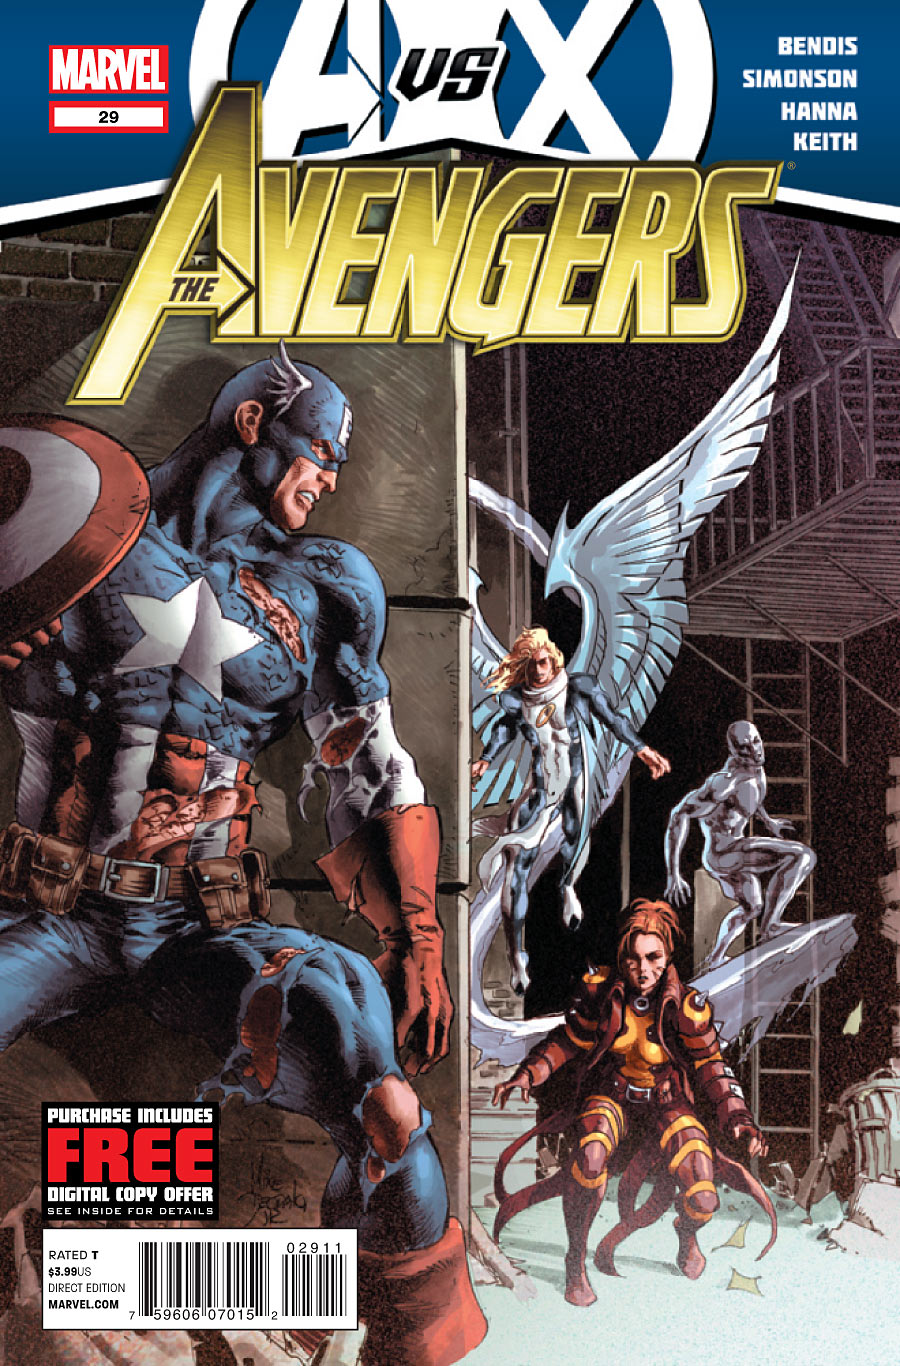 Cover for AvX Tie-In Avengers issue 29